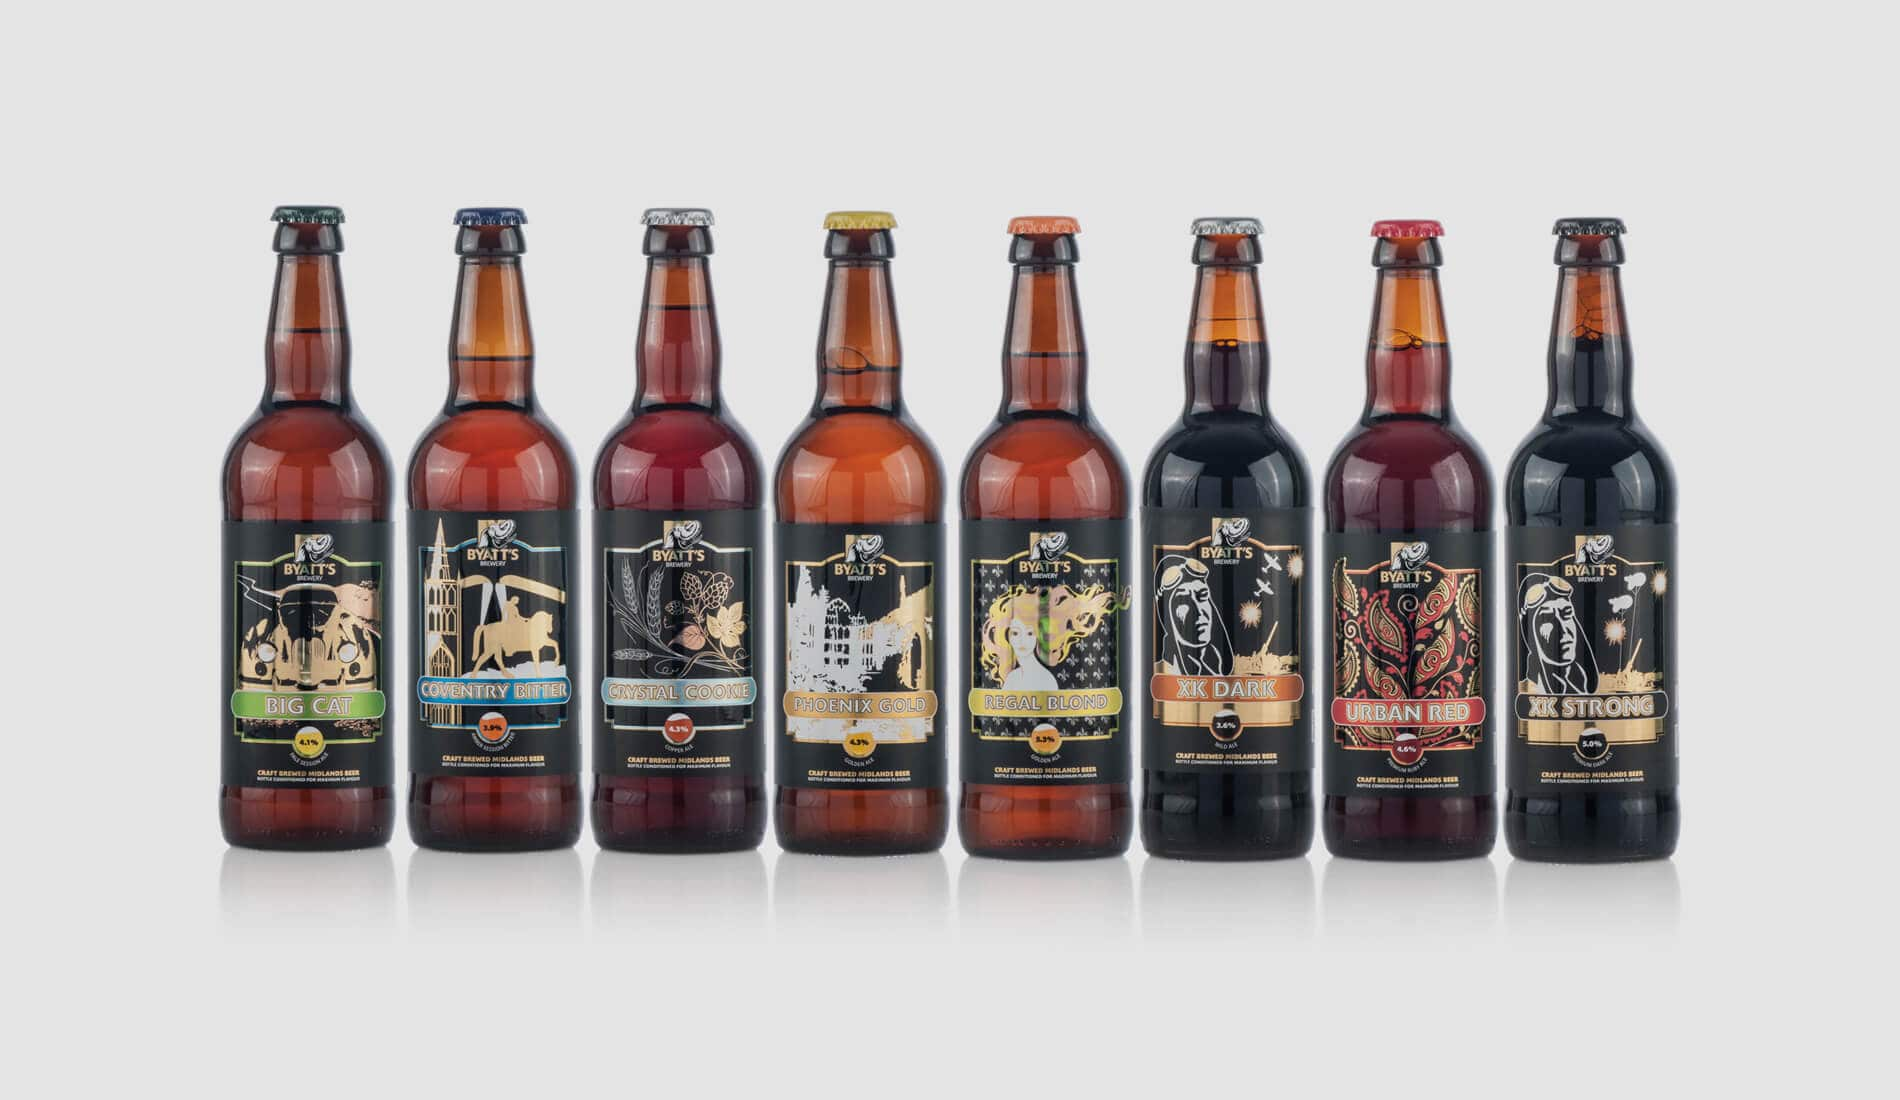 Byatt's Beer Labels on range of bottles